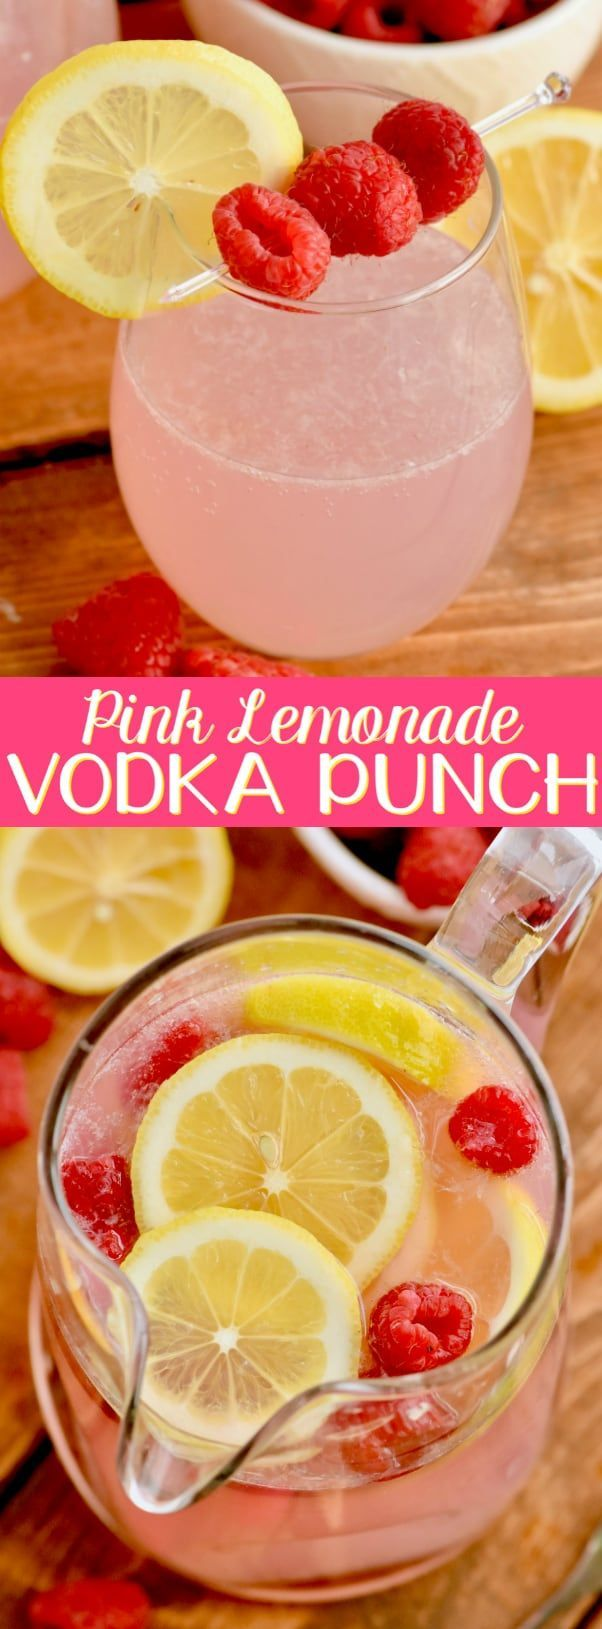 This Pink Lemonade Vodka Punch recipe is only three ingredients!! It is so easy and perfect for a party! #pinklemonade This Pink Lemonade Vodka Punch recipe is only three ingredients!! It is so easy and perfect for a party! #vodkapunch